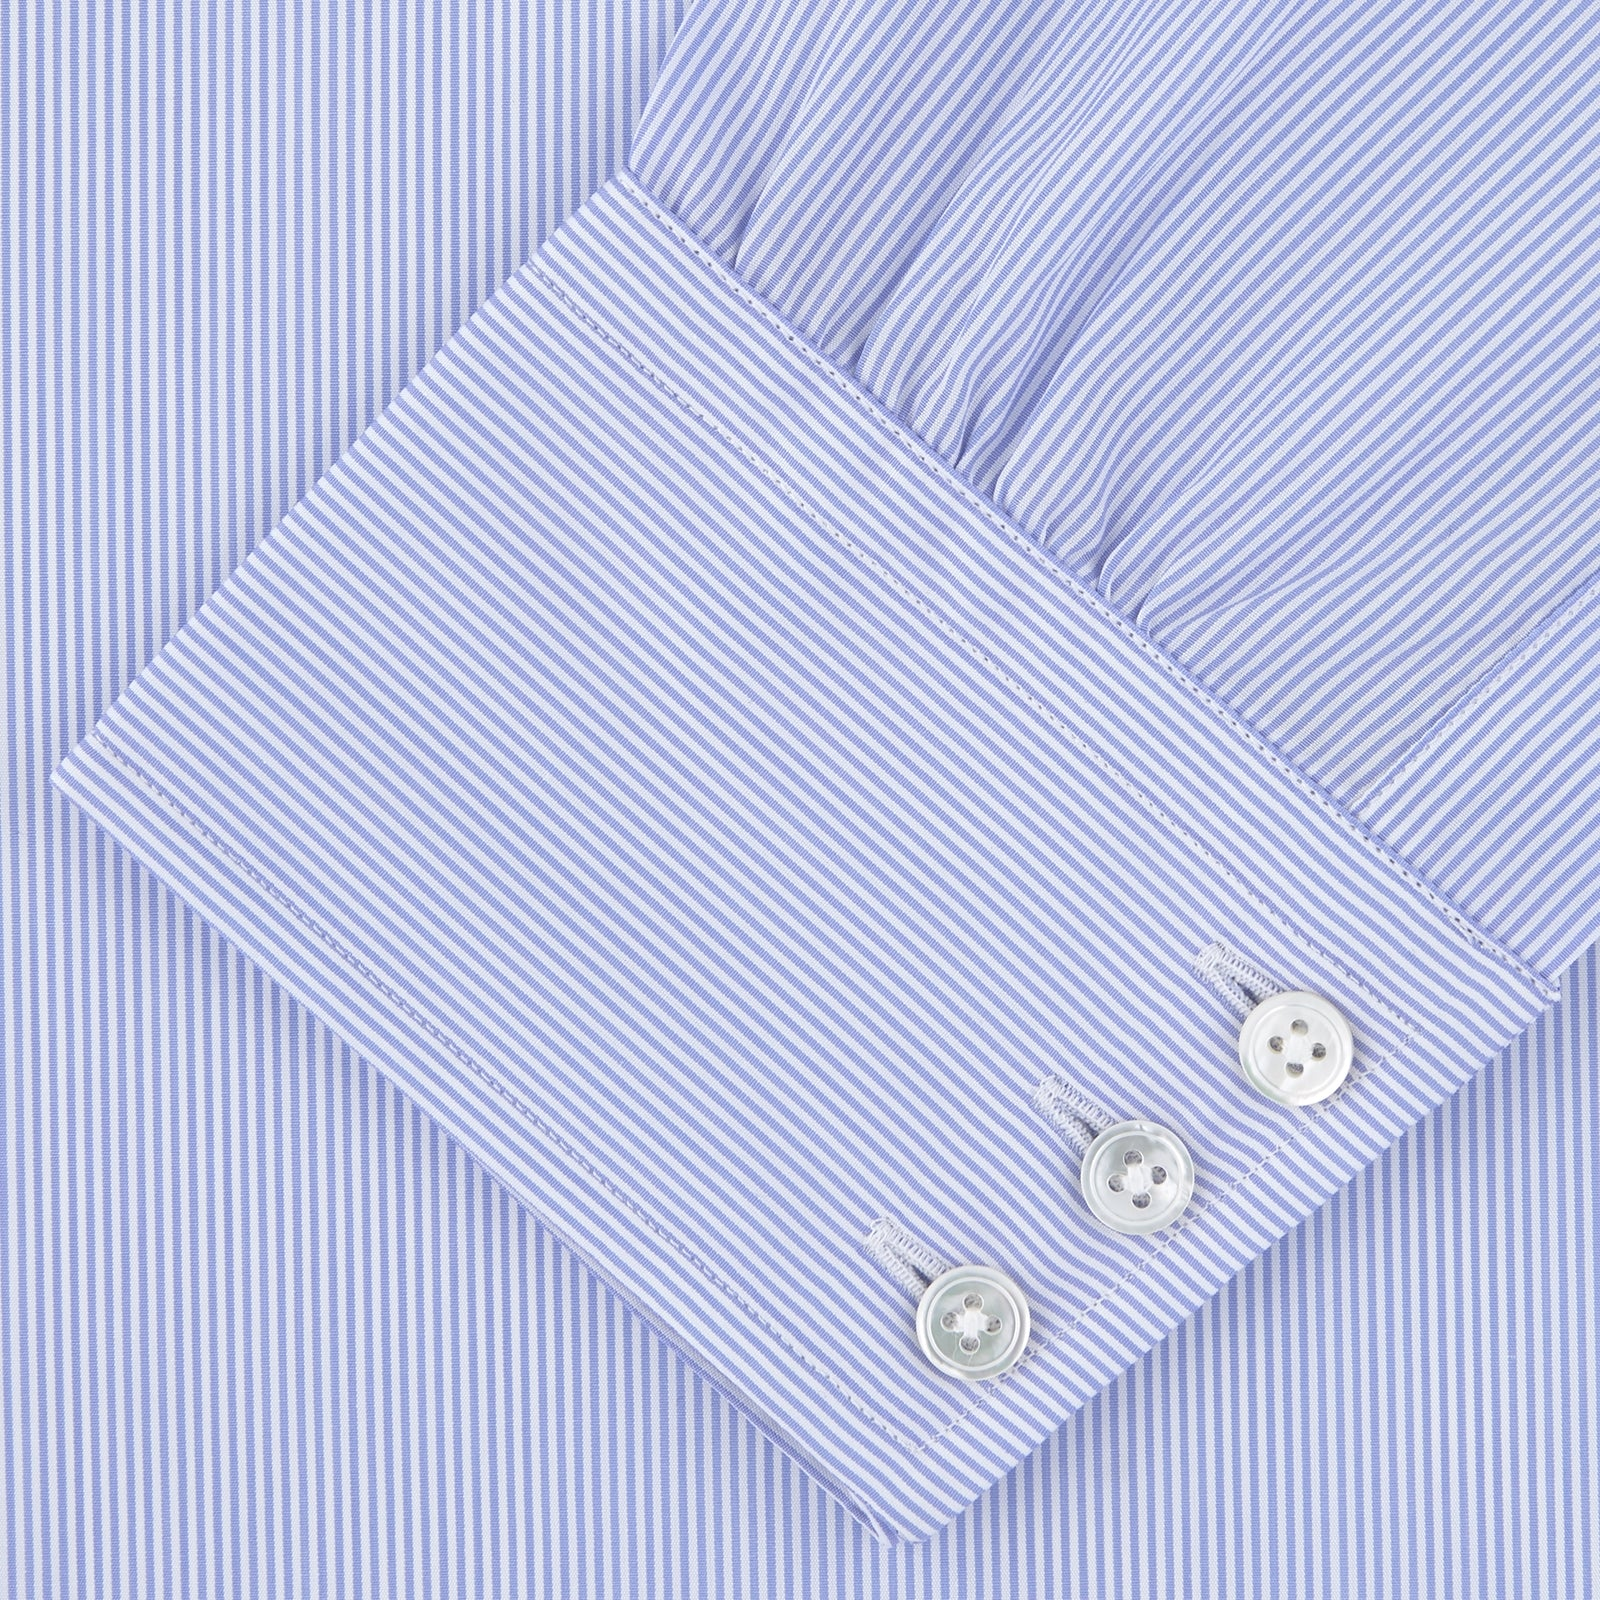 Blue and White Fine Bengal Stripe Sea Island Quality Cotton Shirt with T&A Collar and 3-Button Cuffs